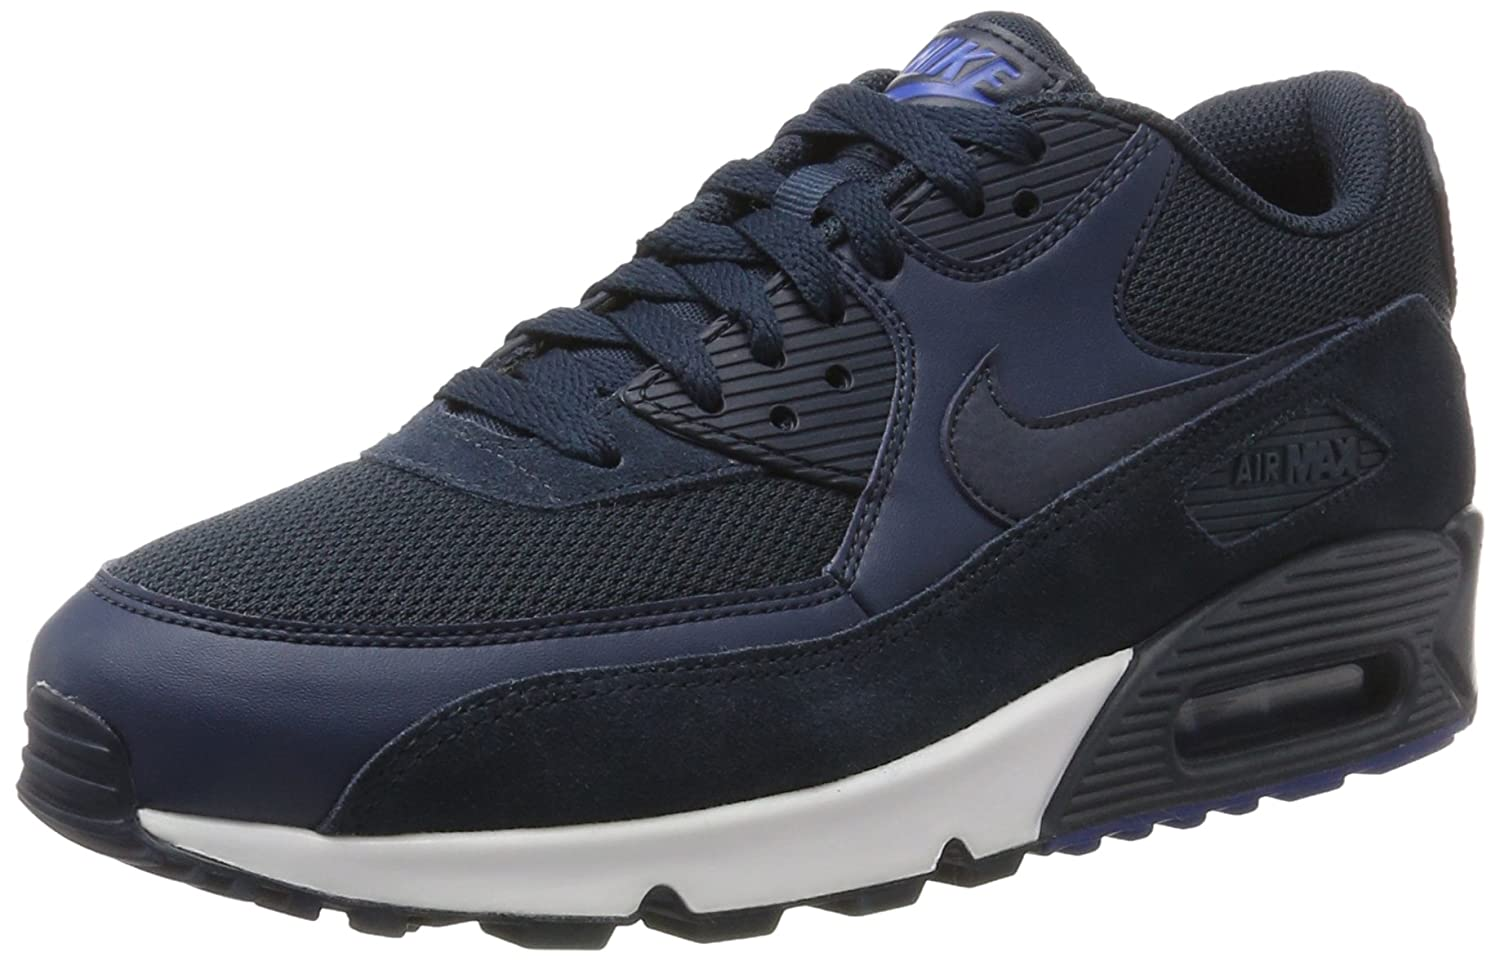 0a4770ec47 Amazon.com | Nike Air Max 90 Essential Mens Style: 537384-422 Size: 7.5 |  Road Running